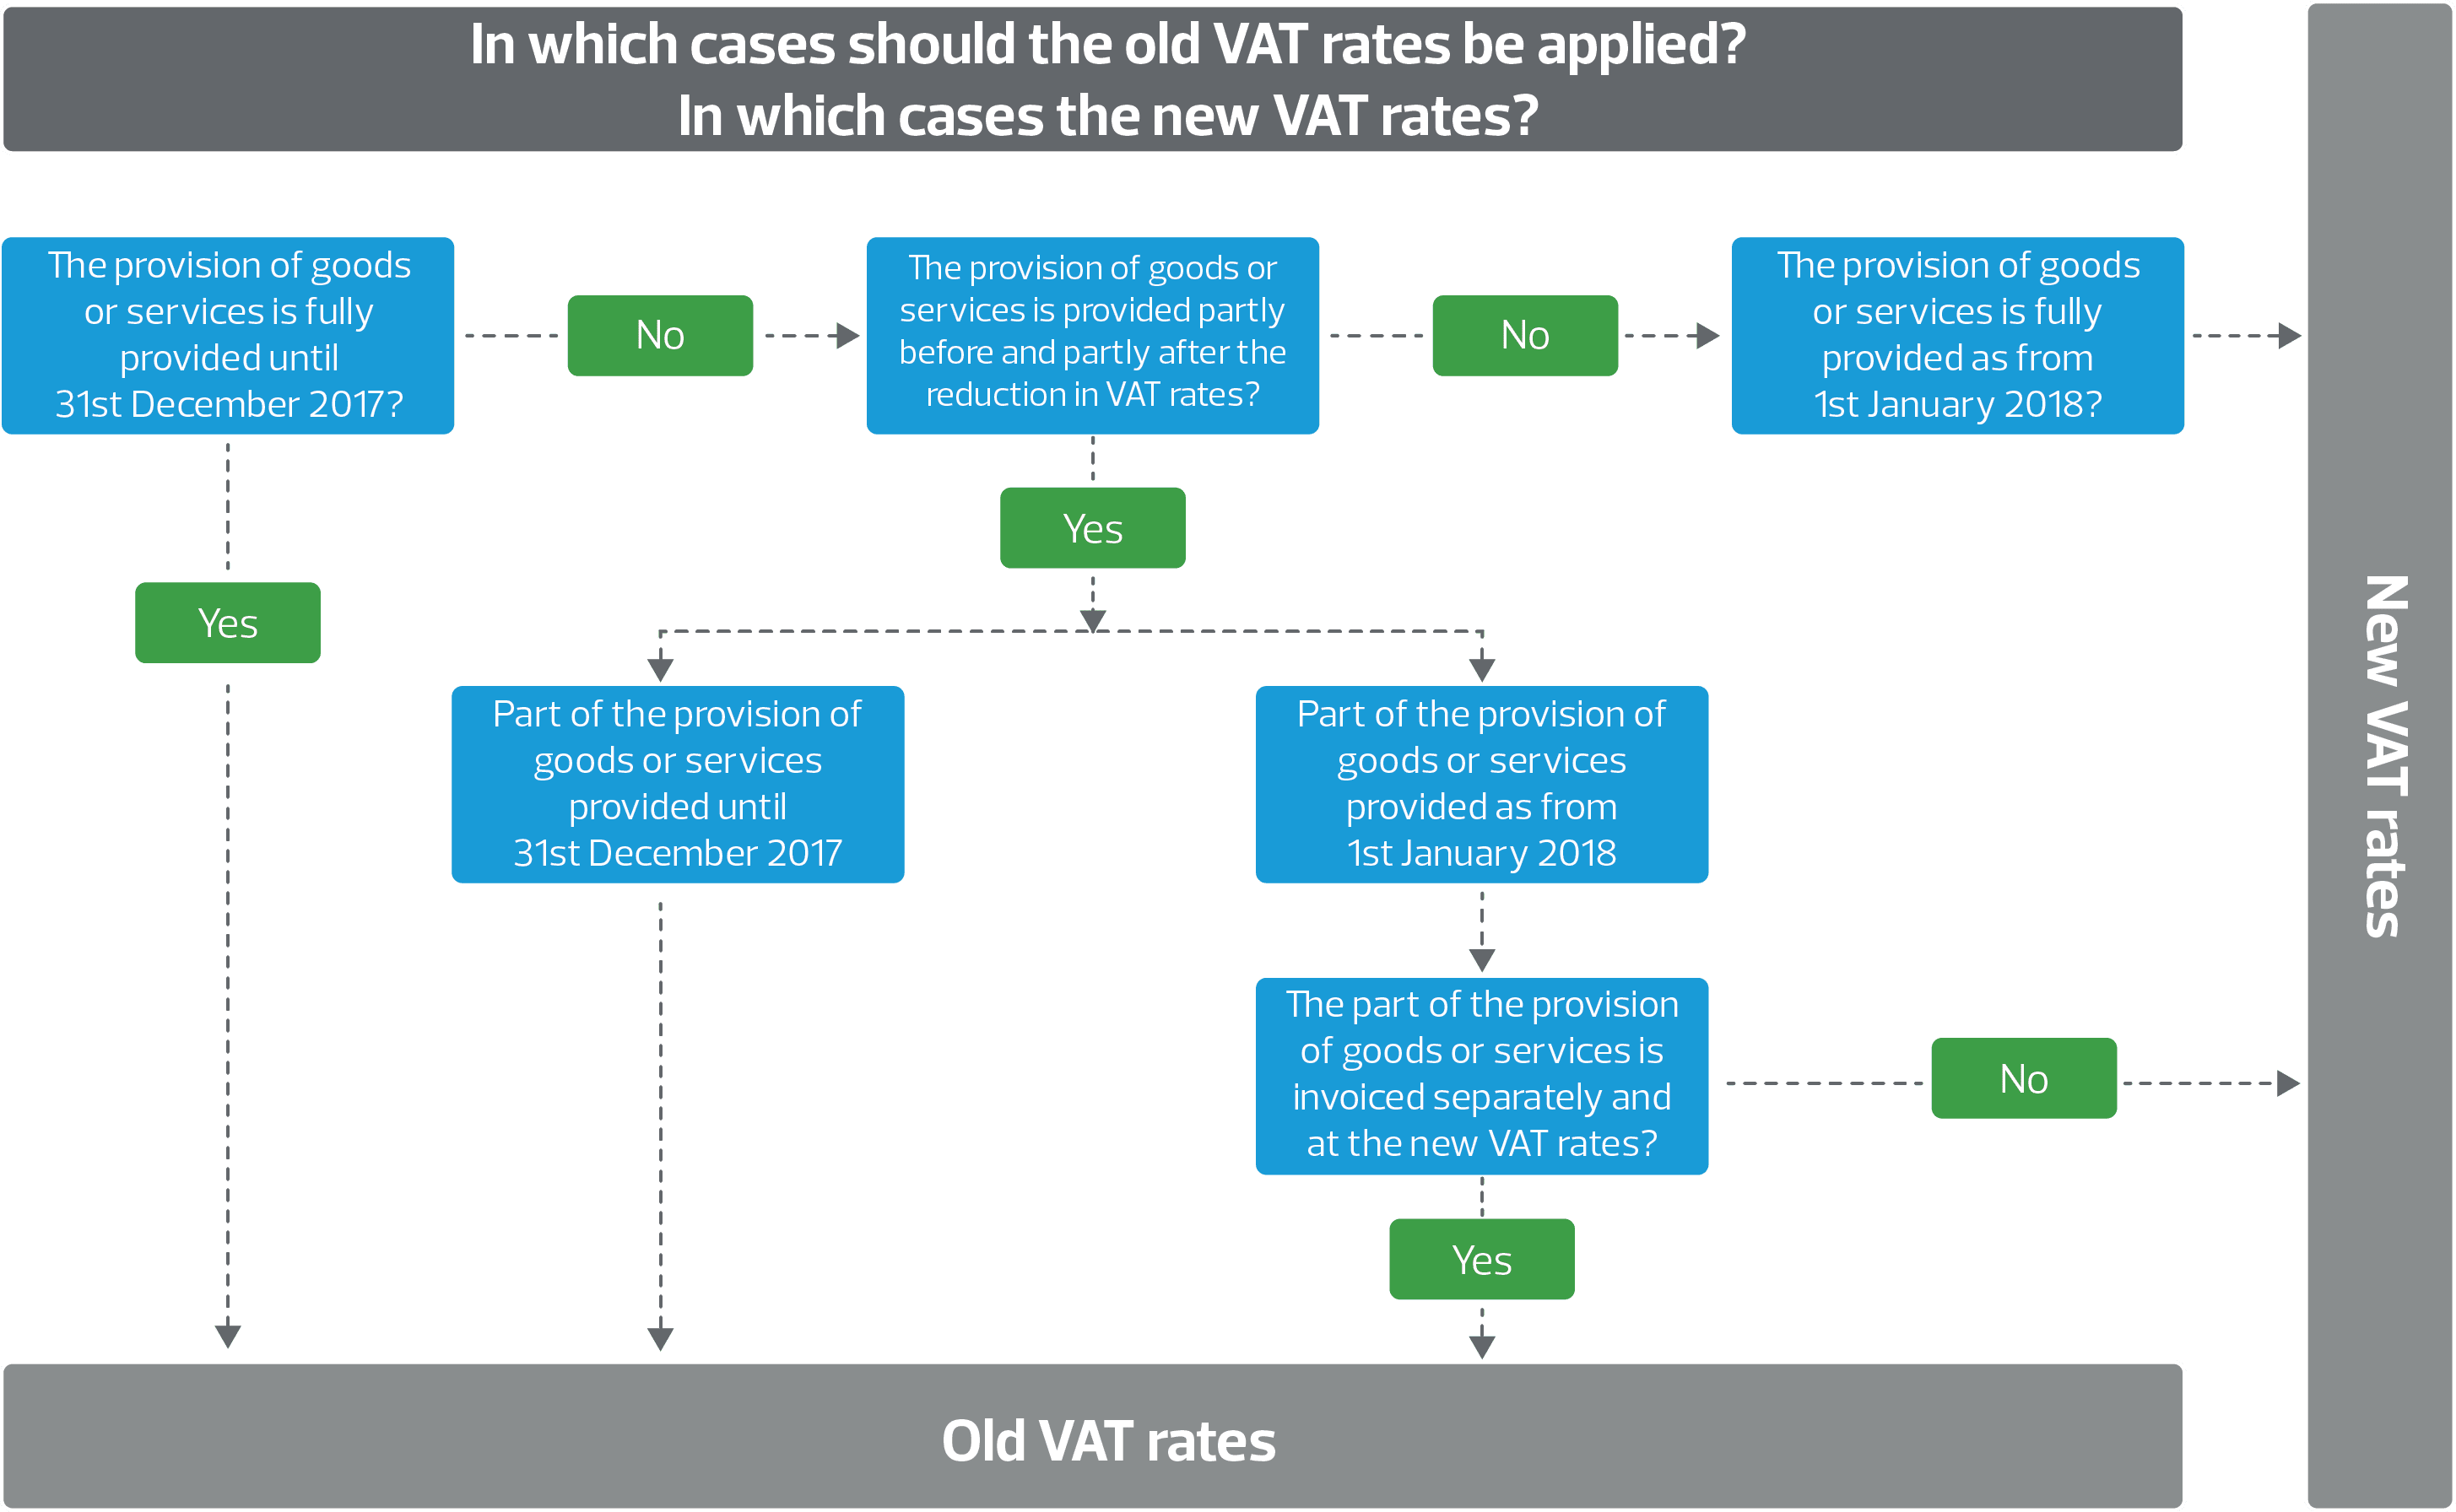 new_vat_rates_in_switzerland_english.png